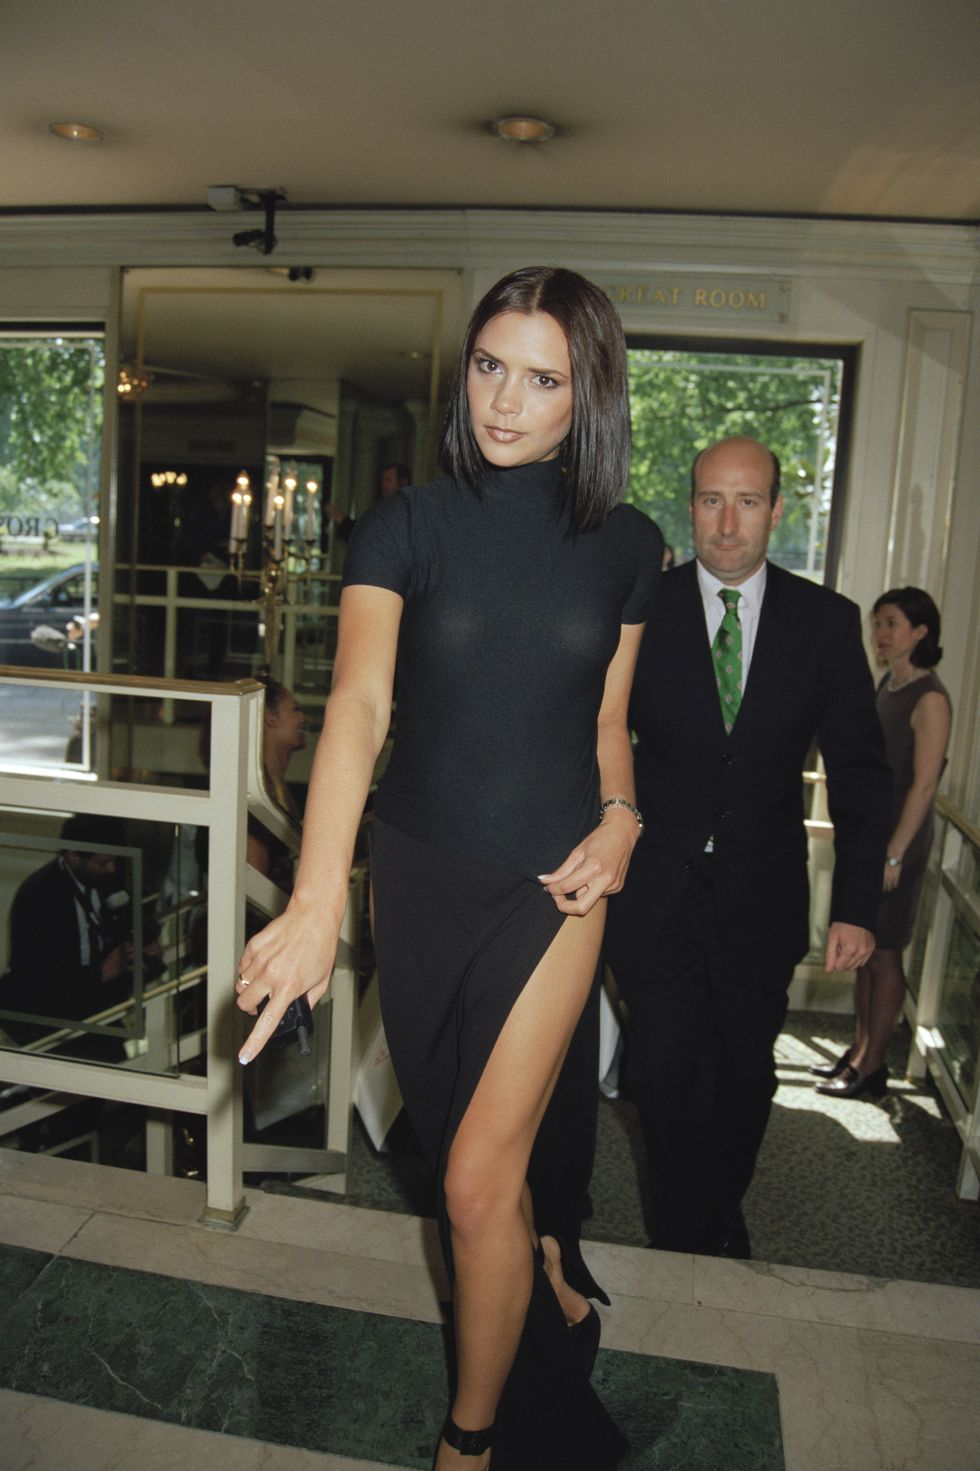 Victoria Beckham Beauty Launches Posh Spice Lipstick